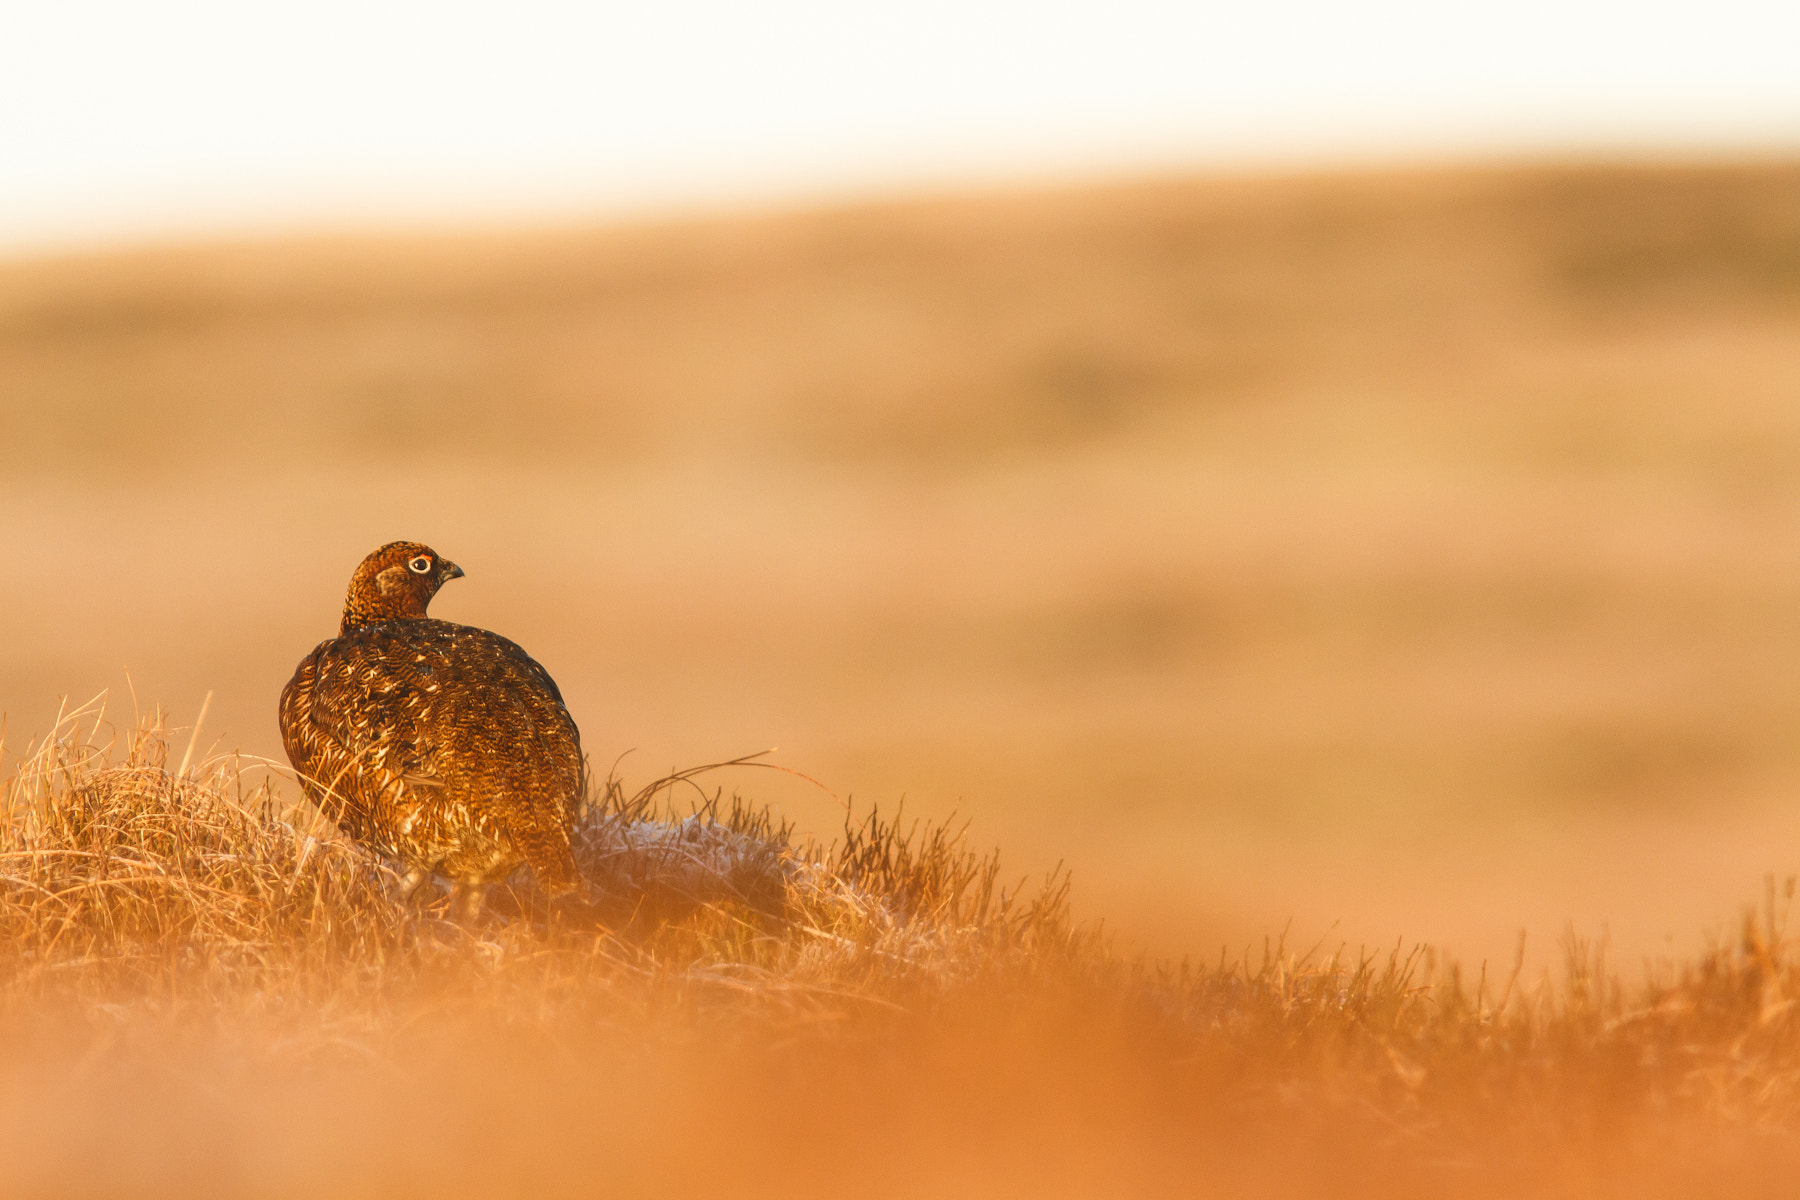 Photograph Golden Grouse by Mark Ellison on 500px